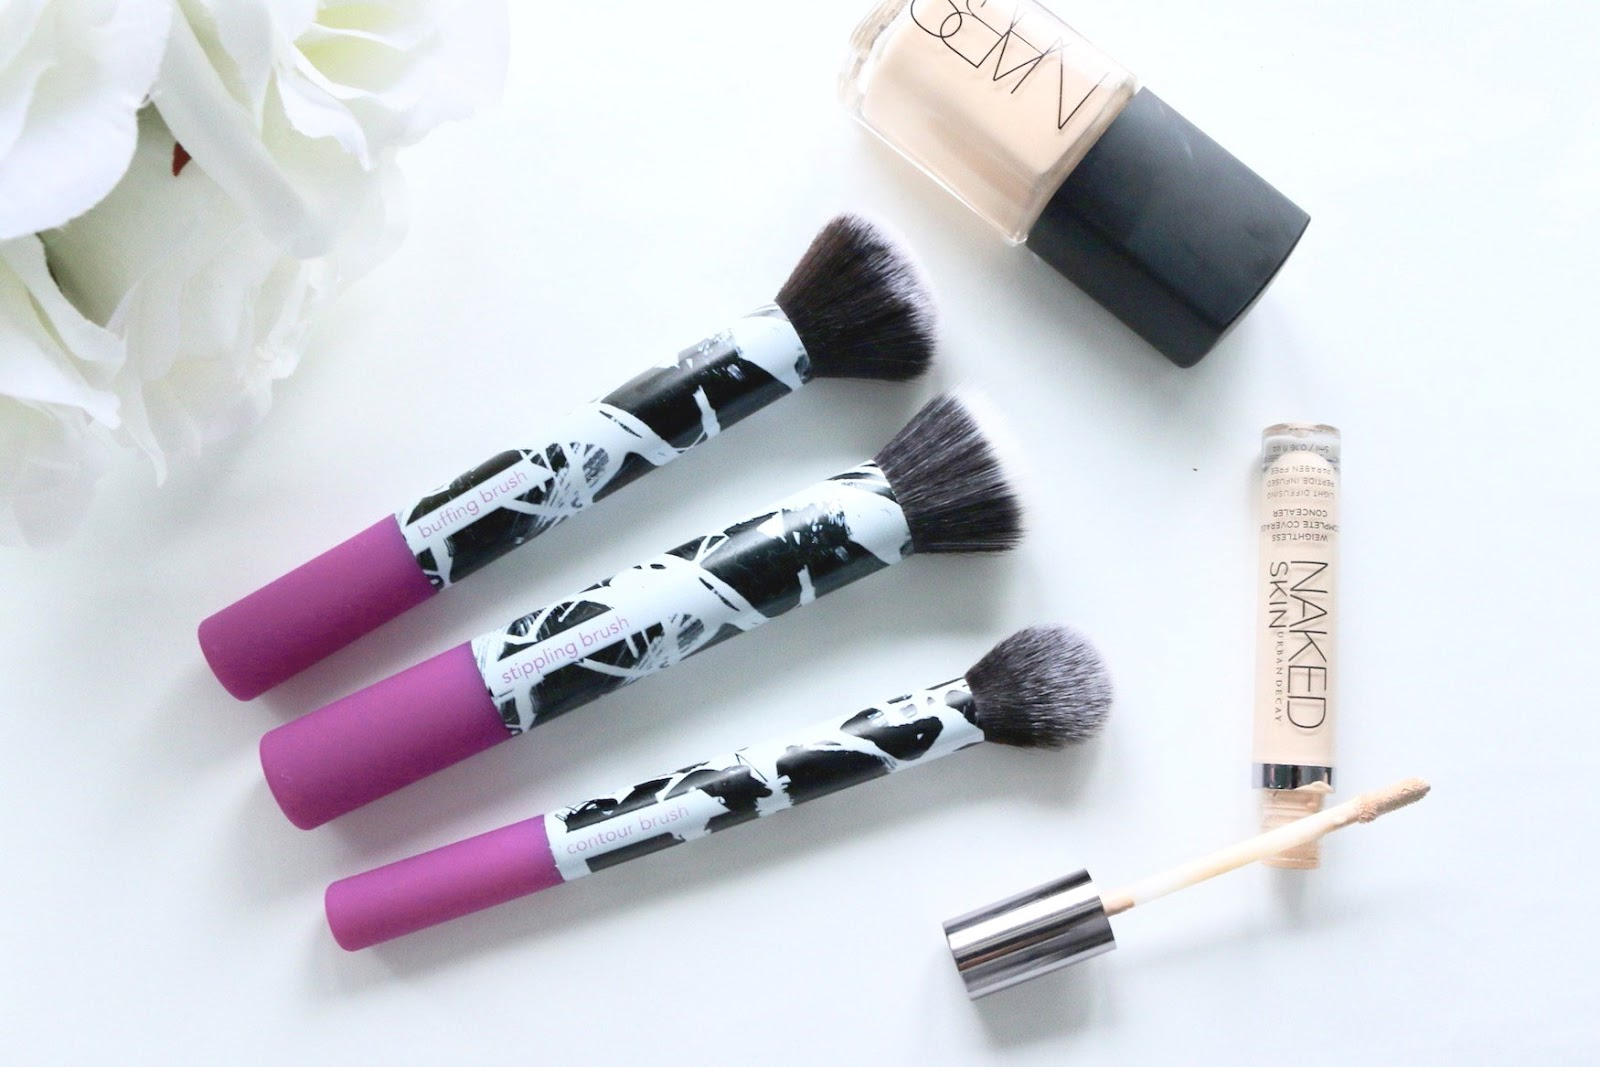 Real Techniques Your Picks Set Berlin Beauty Review